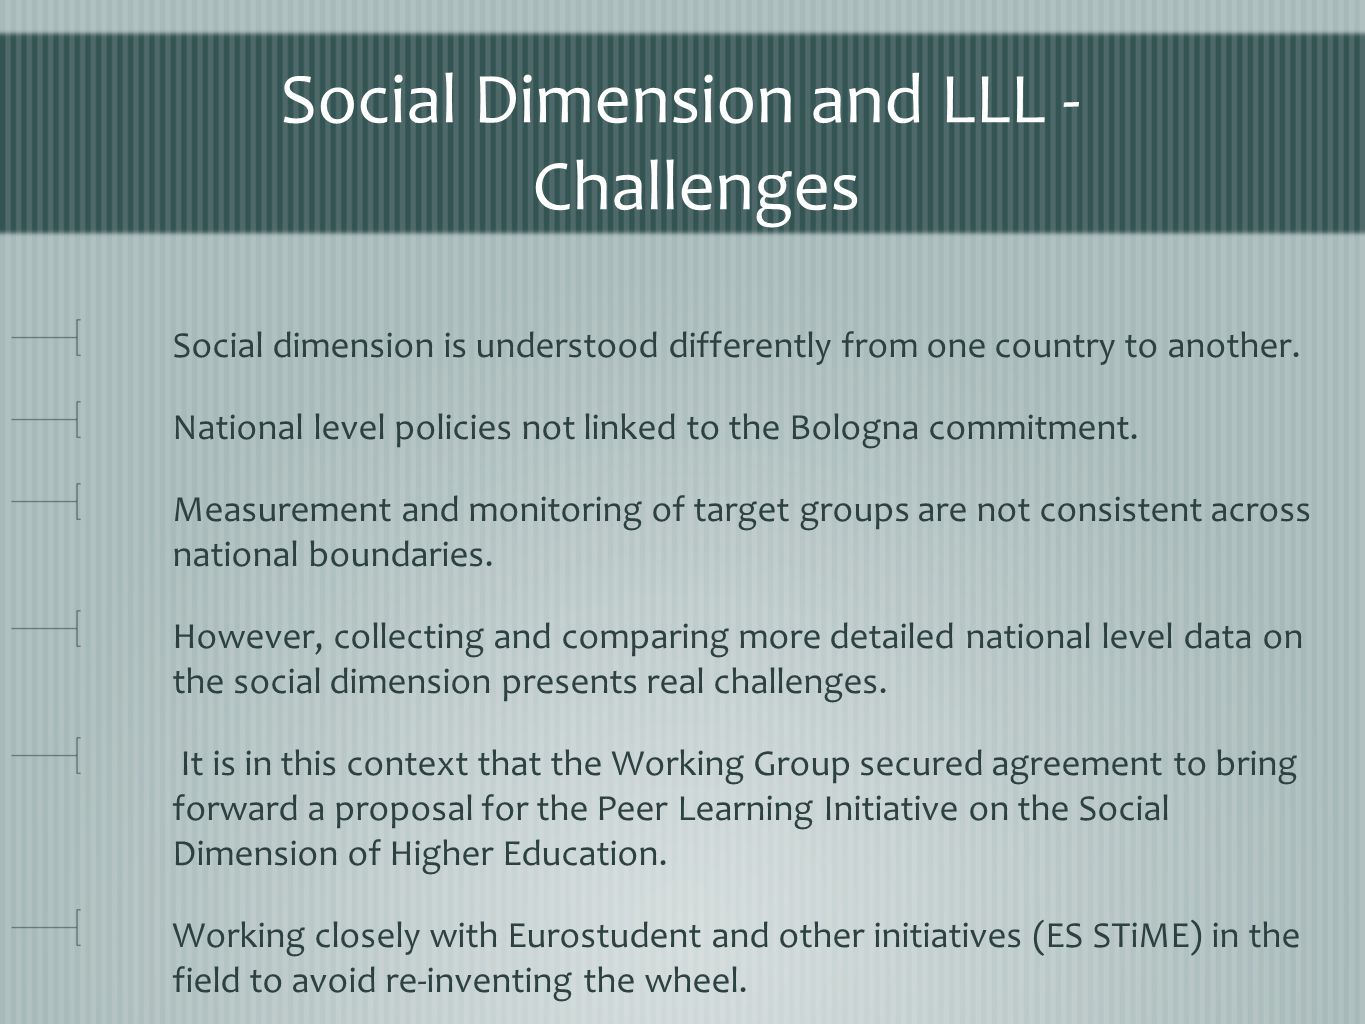 Social Dimension and LLL - Challenges Social dimension is understood differently from one country to another.